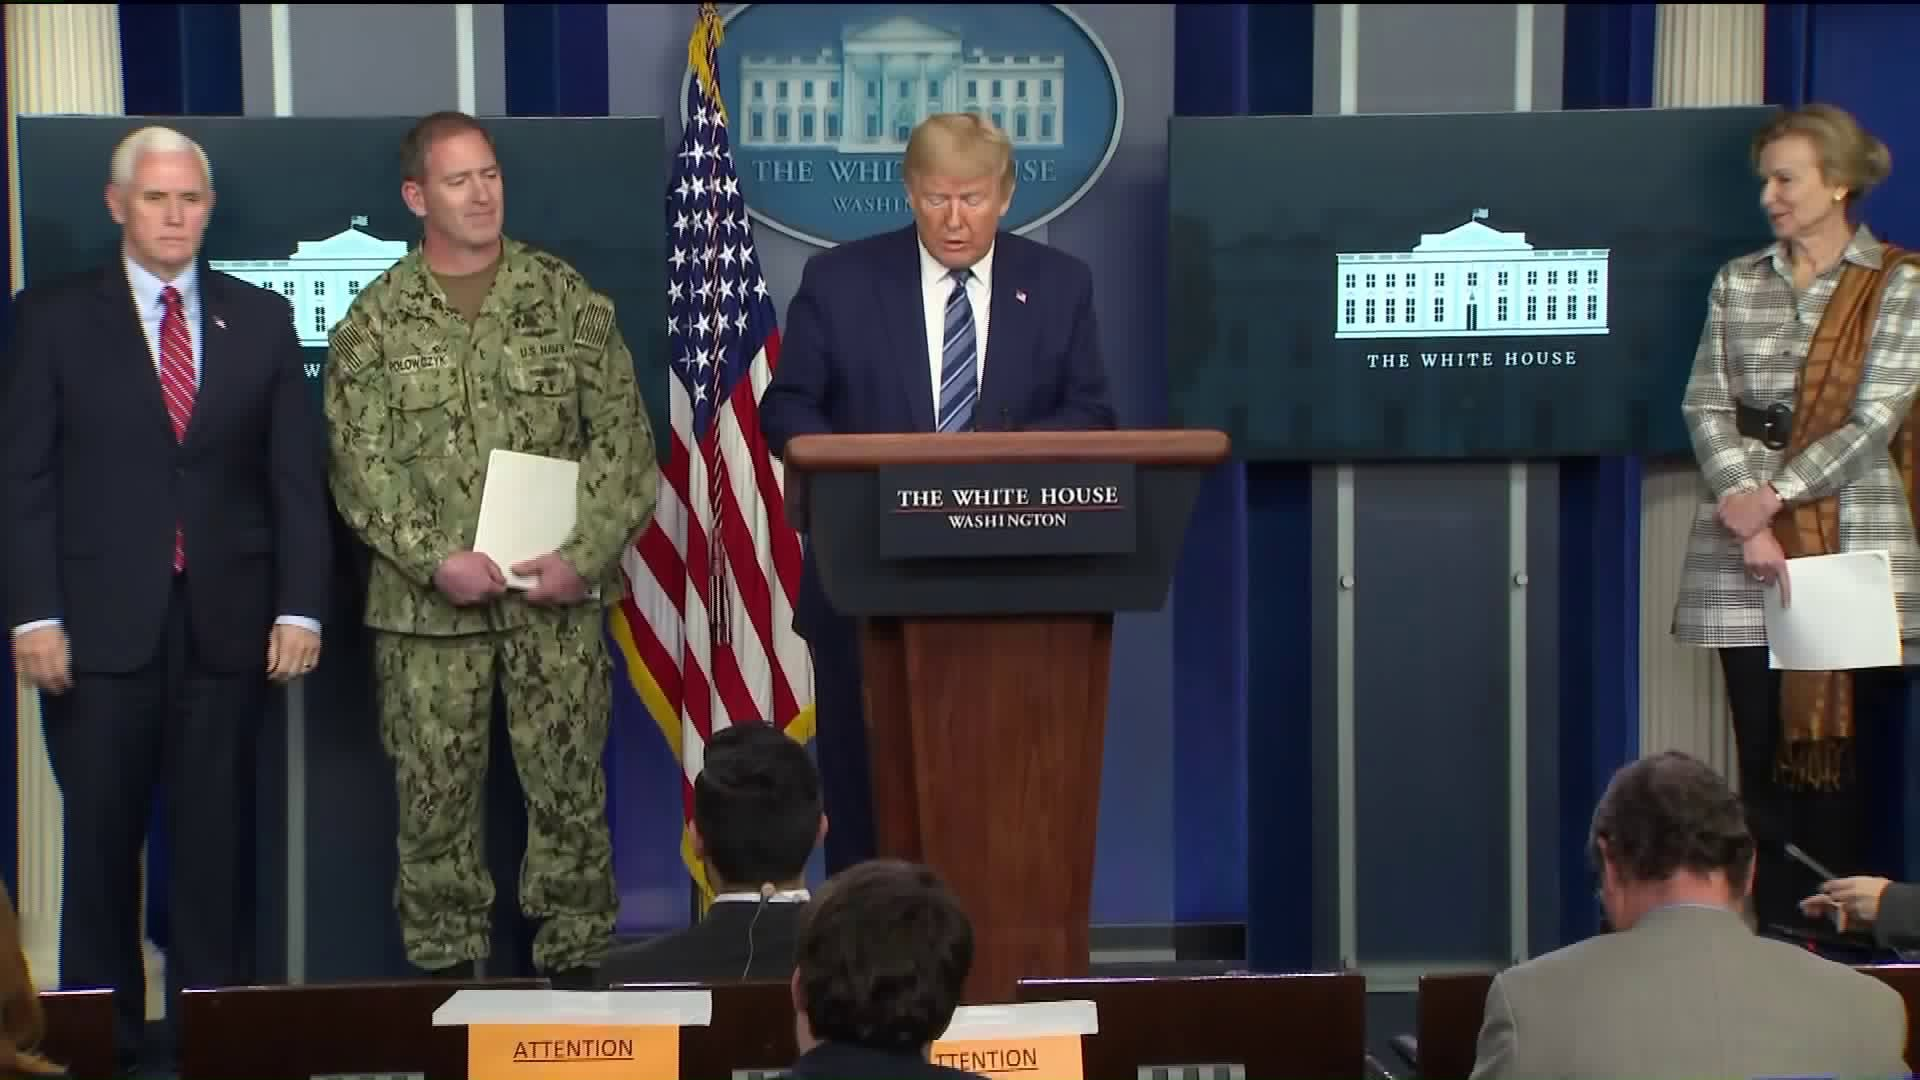 President Donald Trump and other federal officials provide an update on the COVID-19 pandemic at the White House on April 5, 2020. (KTLA)